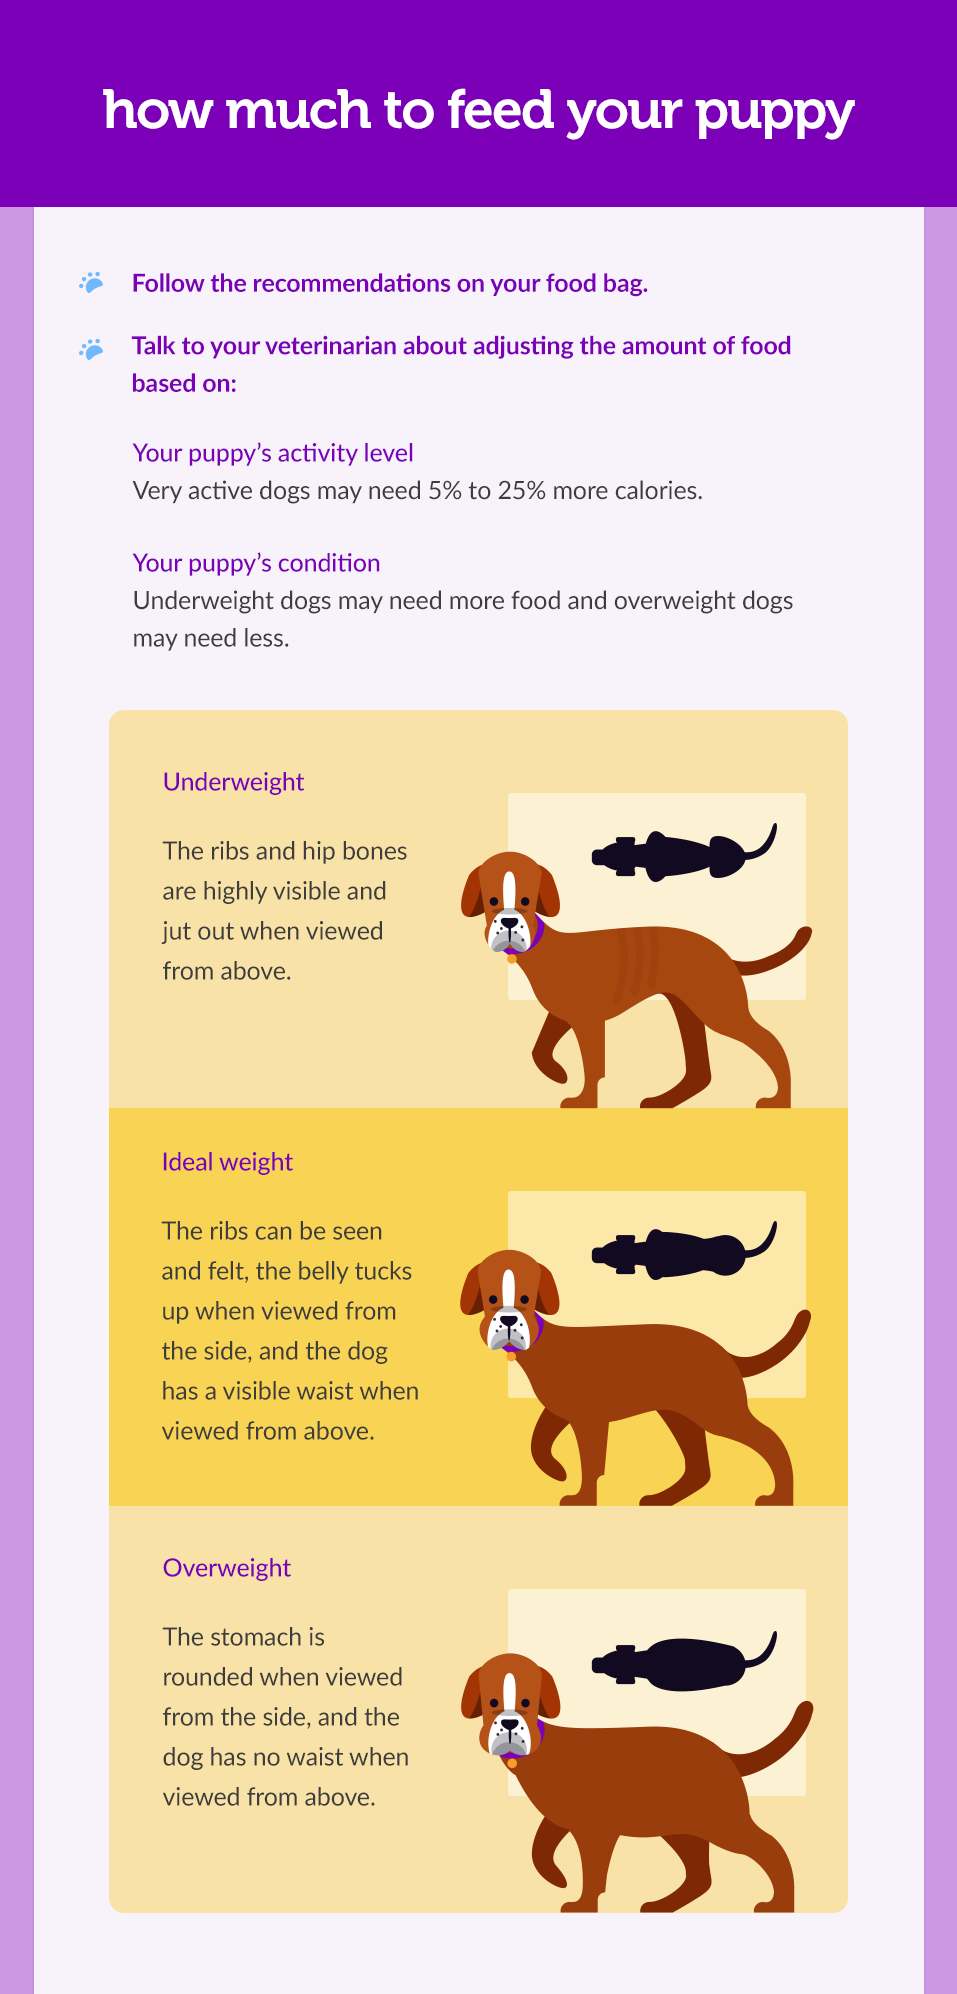 not-sure-how-much-you-should-feed-your-puppy-002